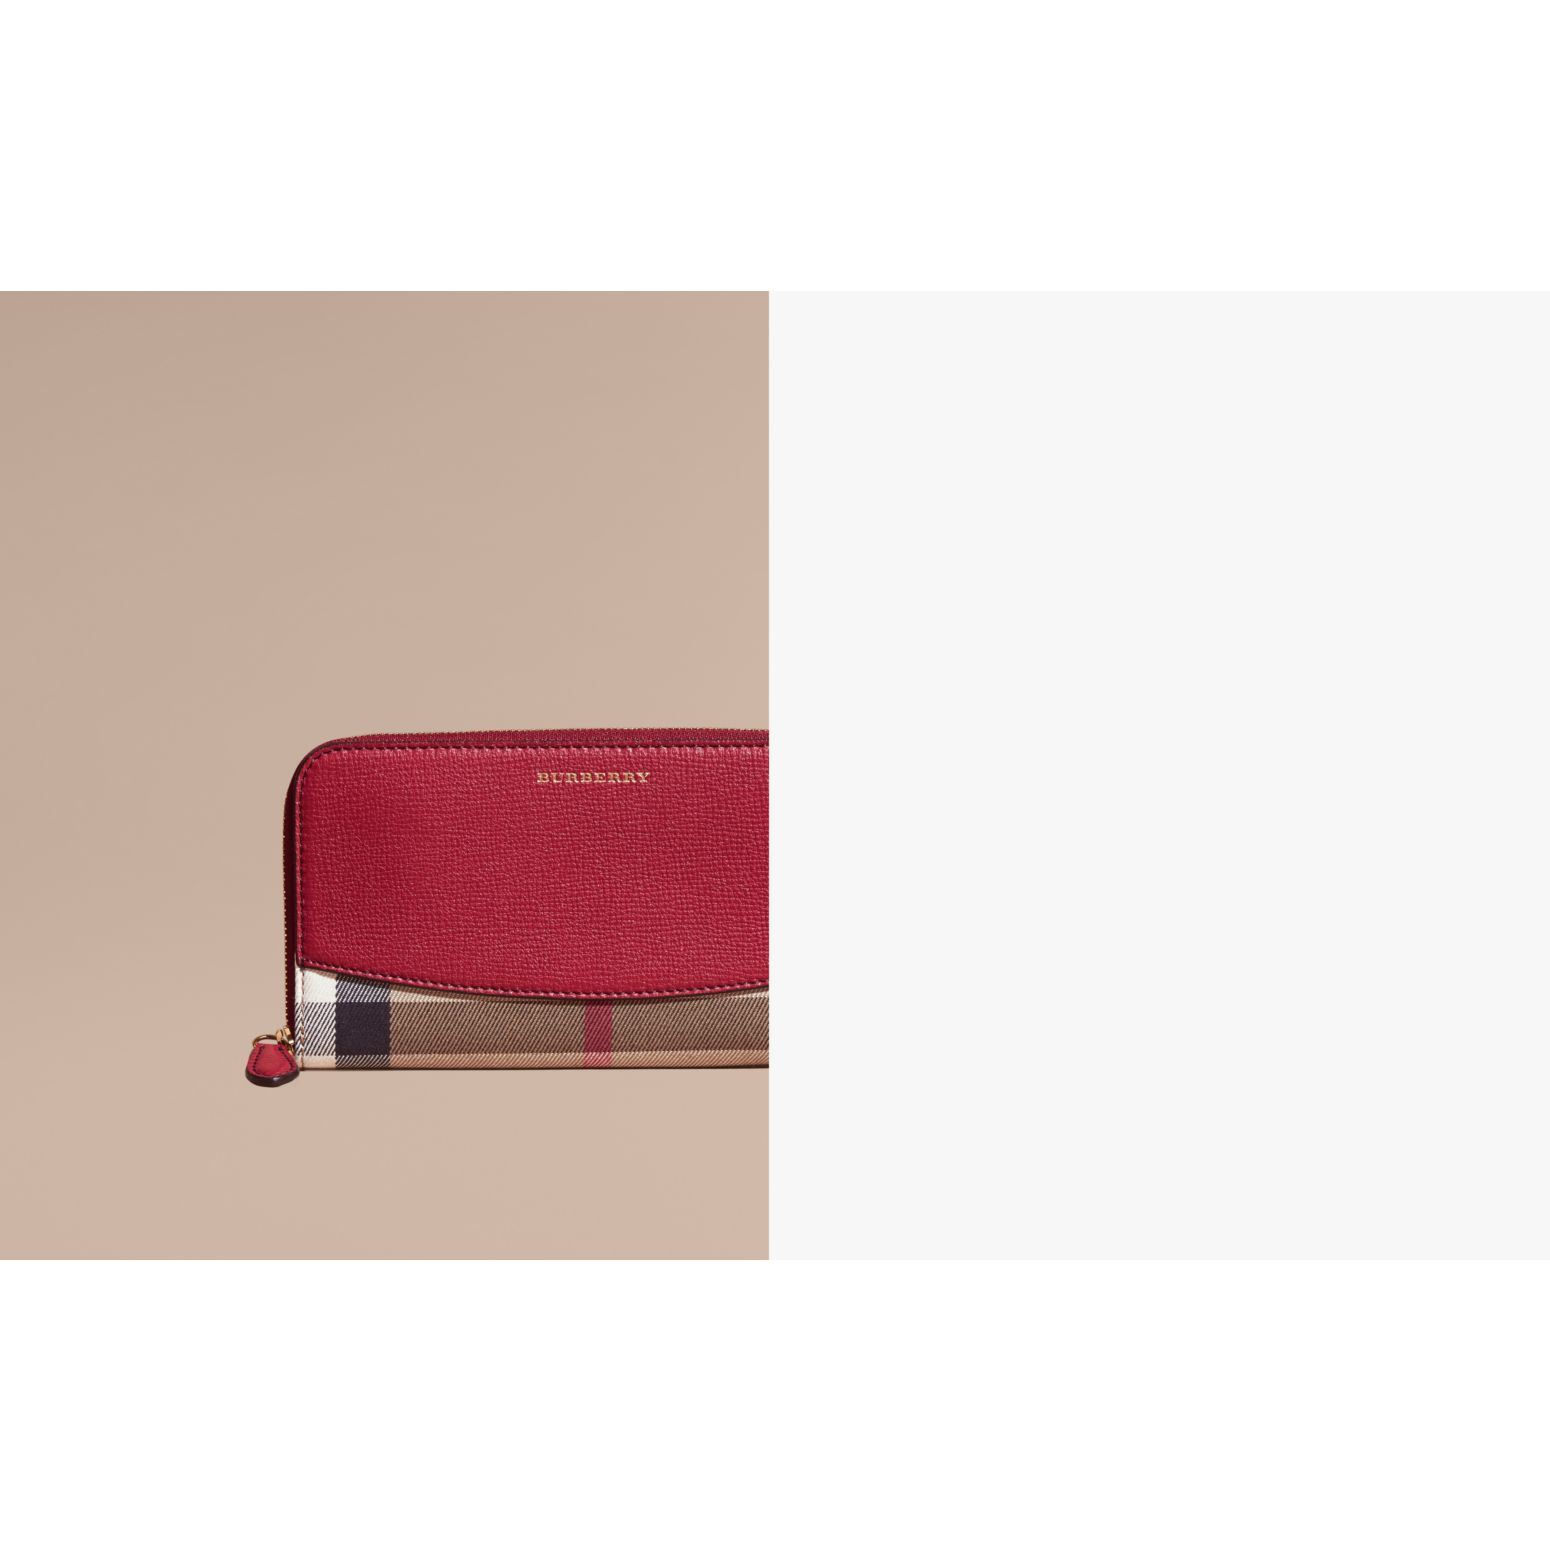 House Check and Leather Ziparound Wallet in Military Red - Women | Burberry - gallery image 2